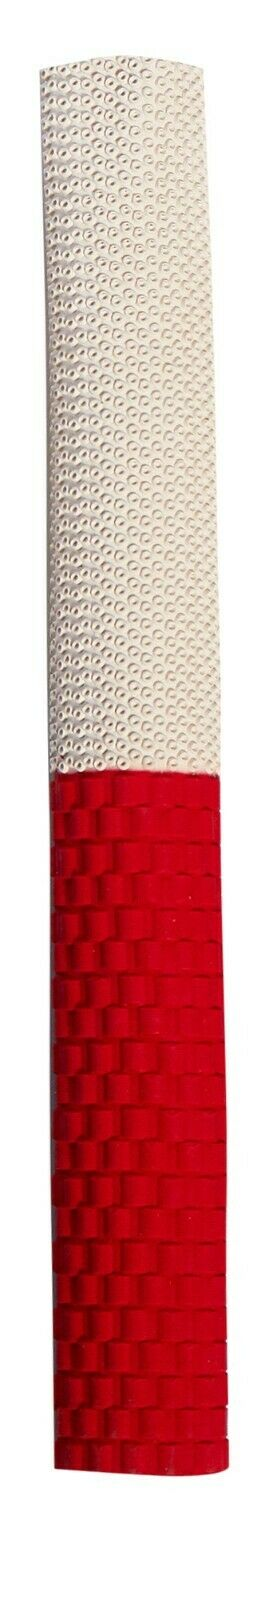 ND FX1 Cricket Bat Grip. Octopus and Arc Technology White/Red